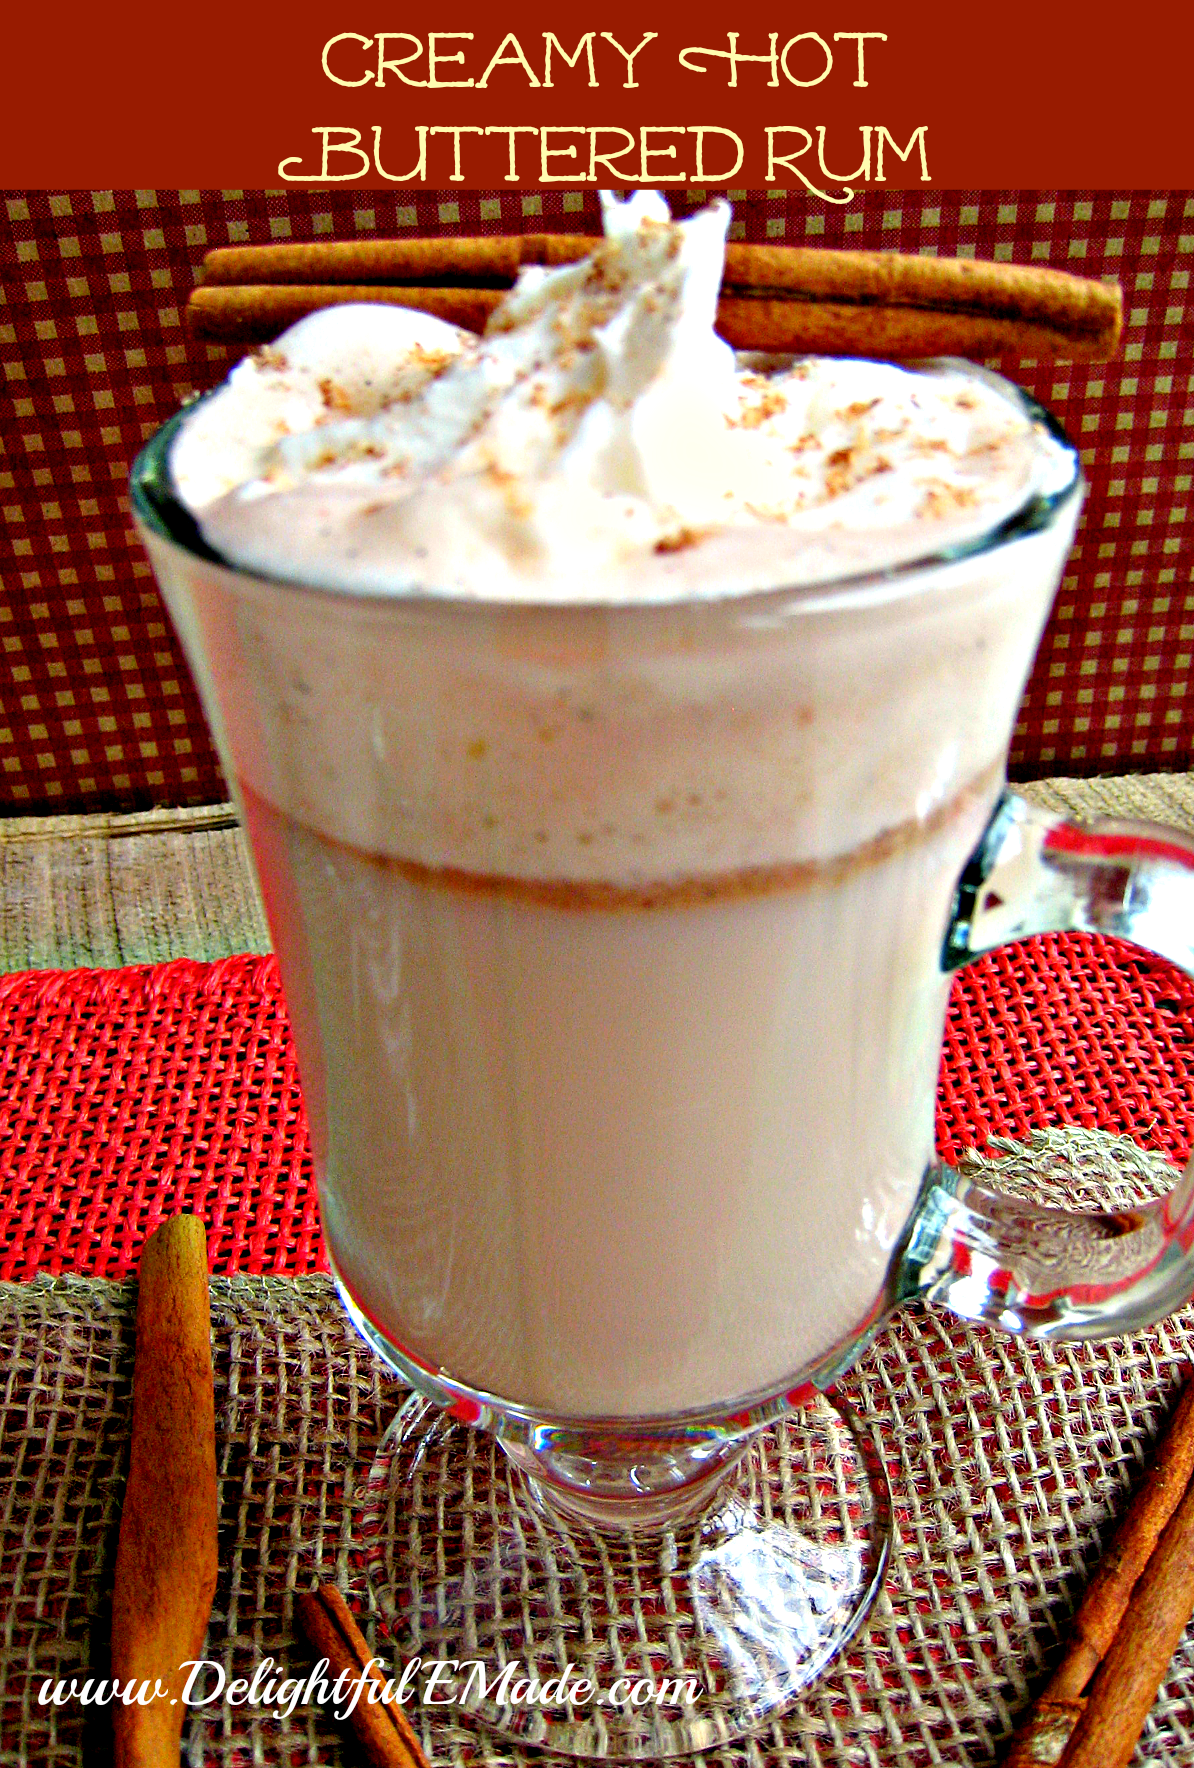 ... Halloween Readiness - Creamy Hot Buttered Rum! - Delightful E Made